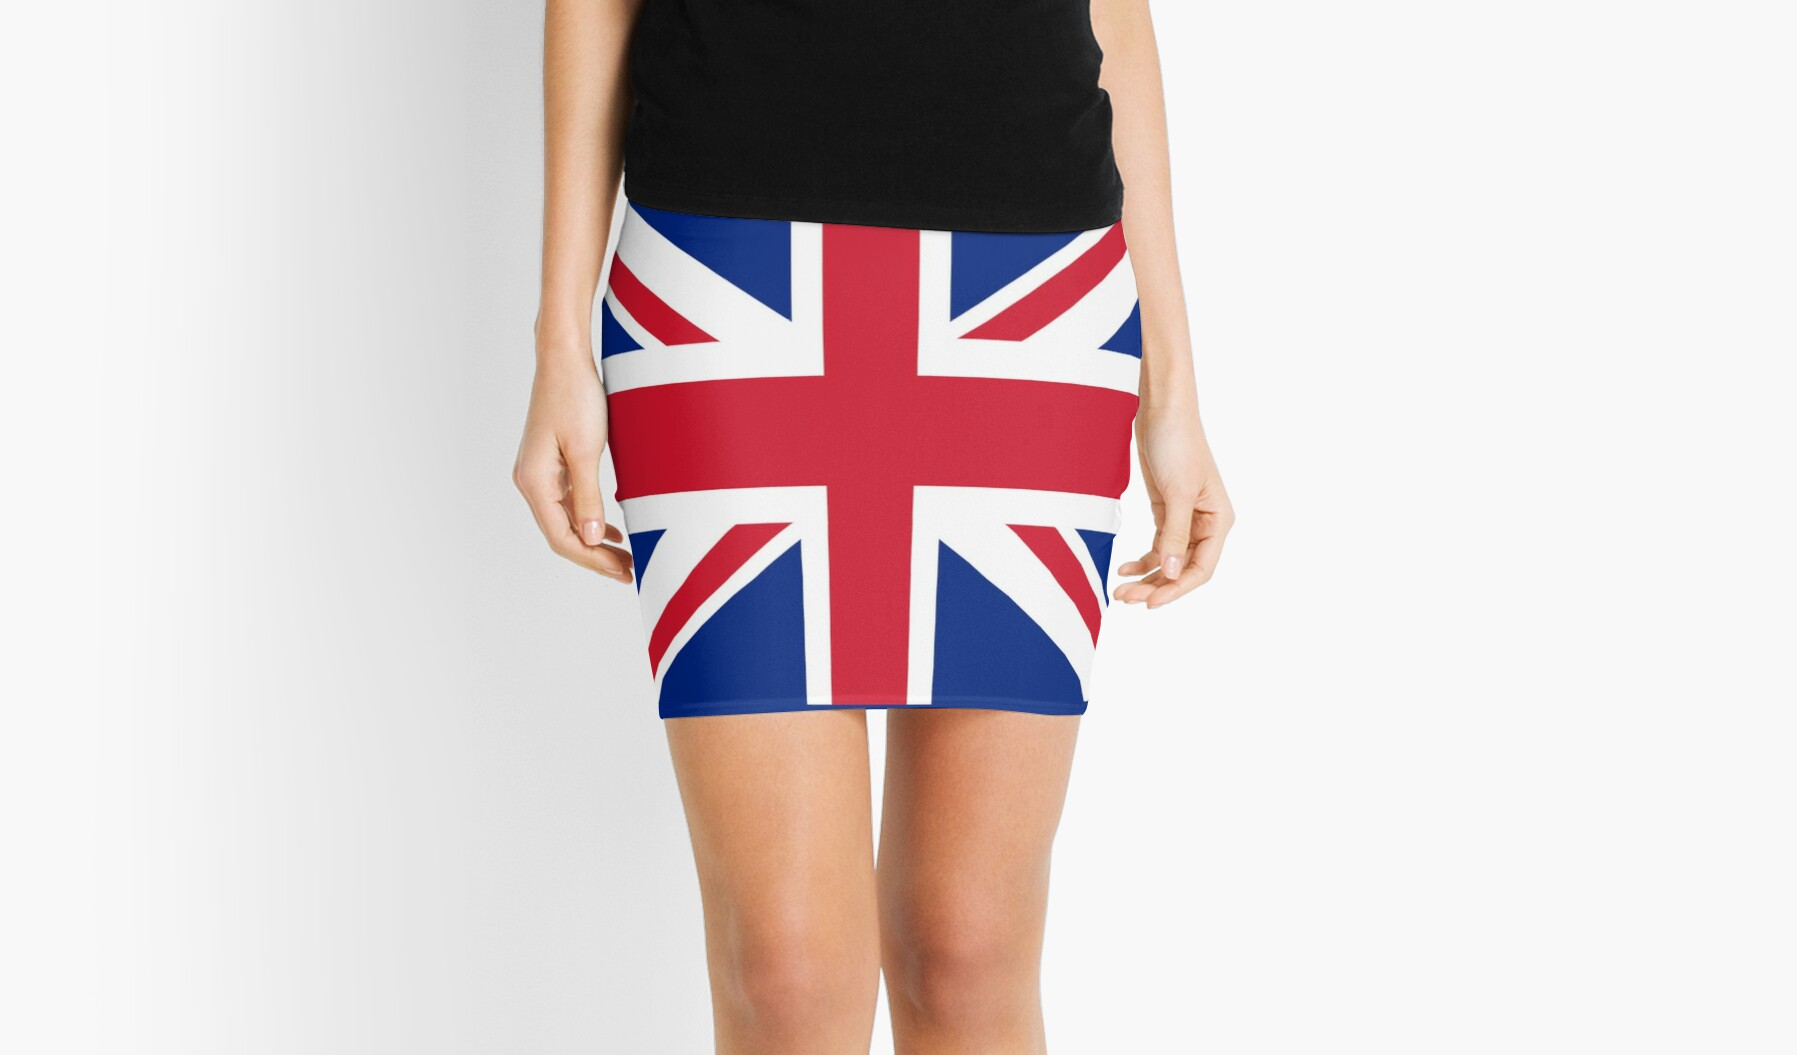 Union Jack 1960s Mini Skirt - Best of British Flag by deanworld